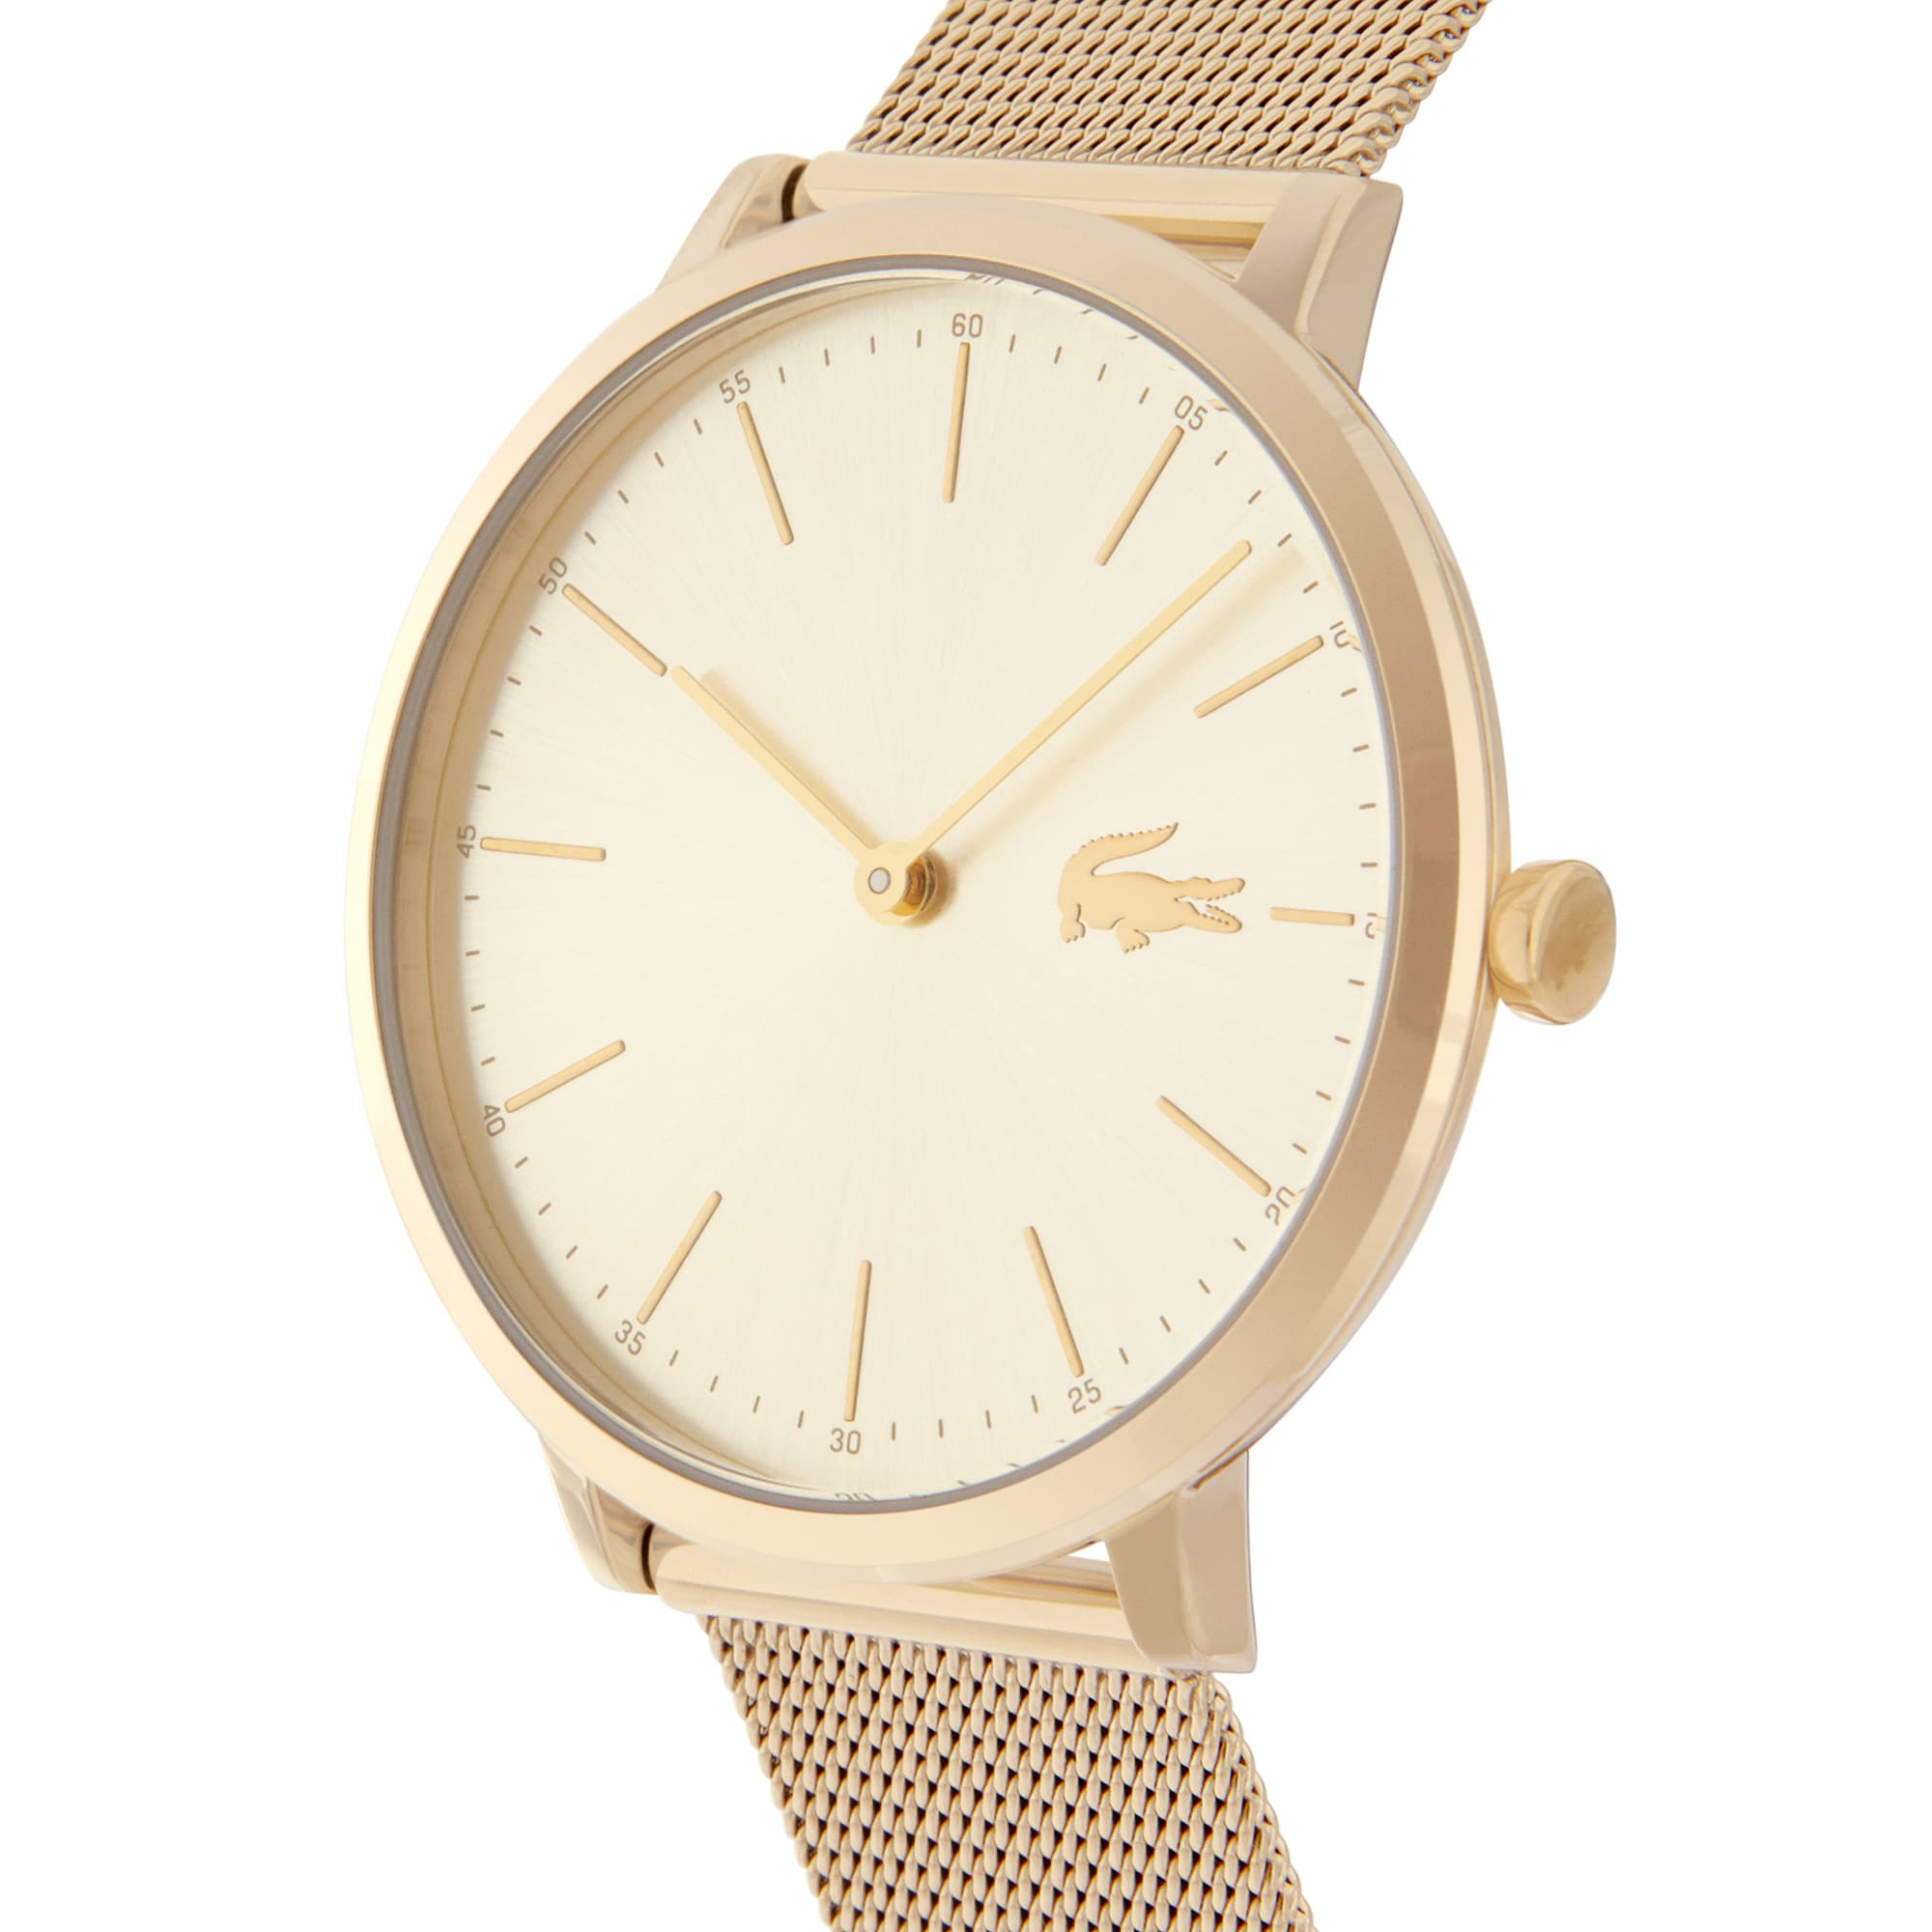 Women's Moon Watch with Gold Mesh Strap